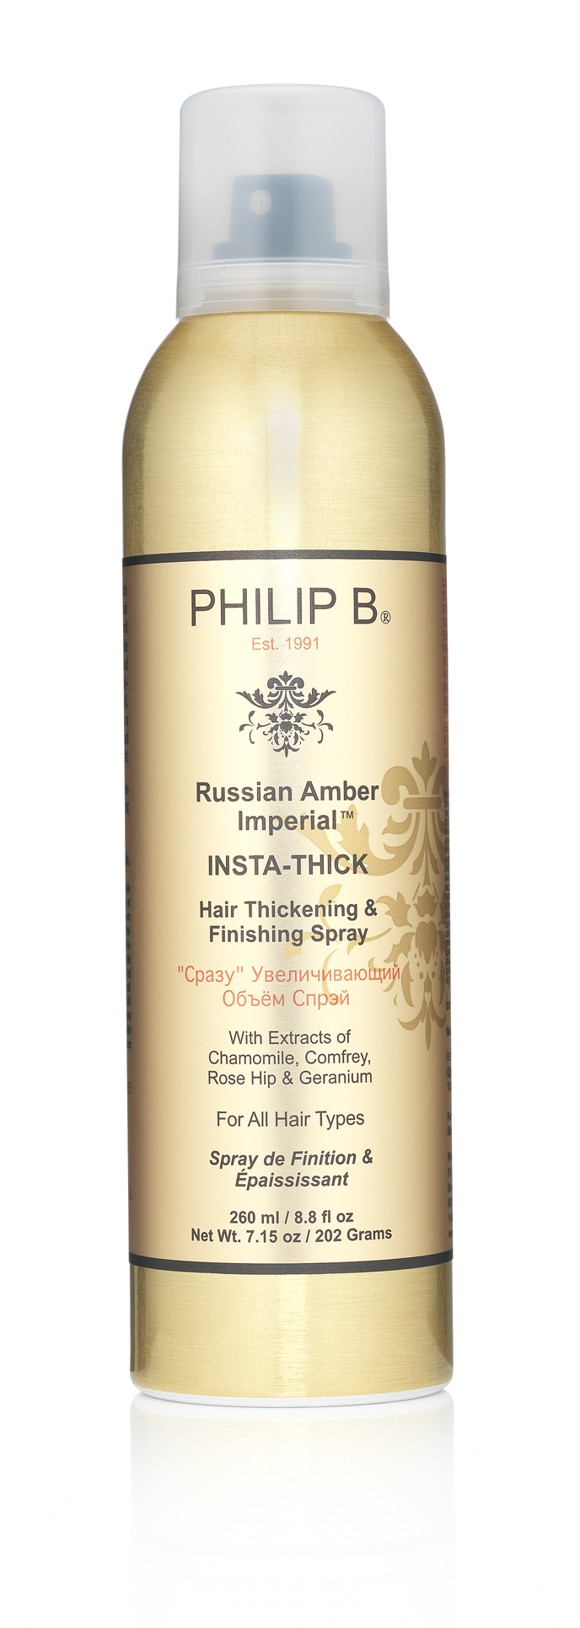 Philip B - Russian Amber Imperial Insta-Thick Spray 260 ml